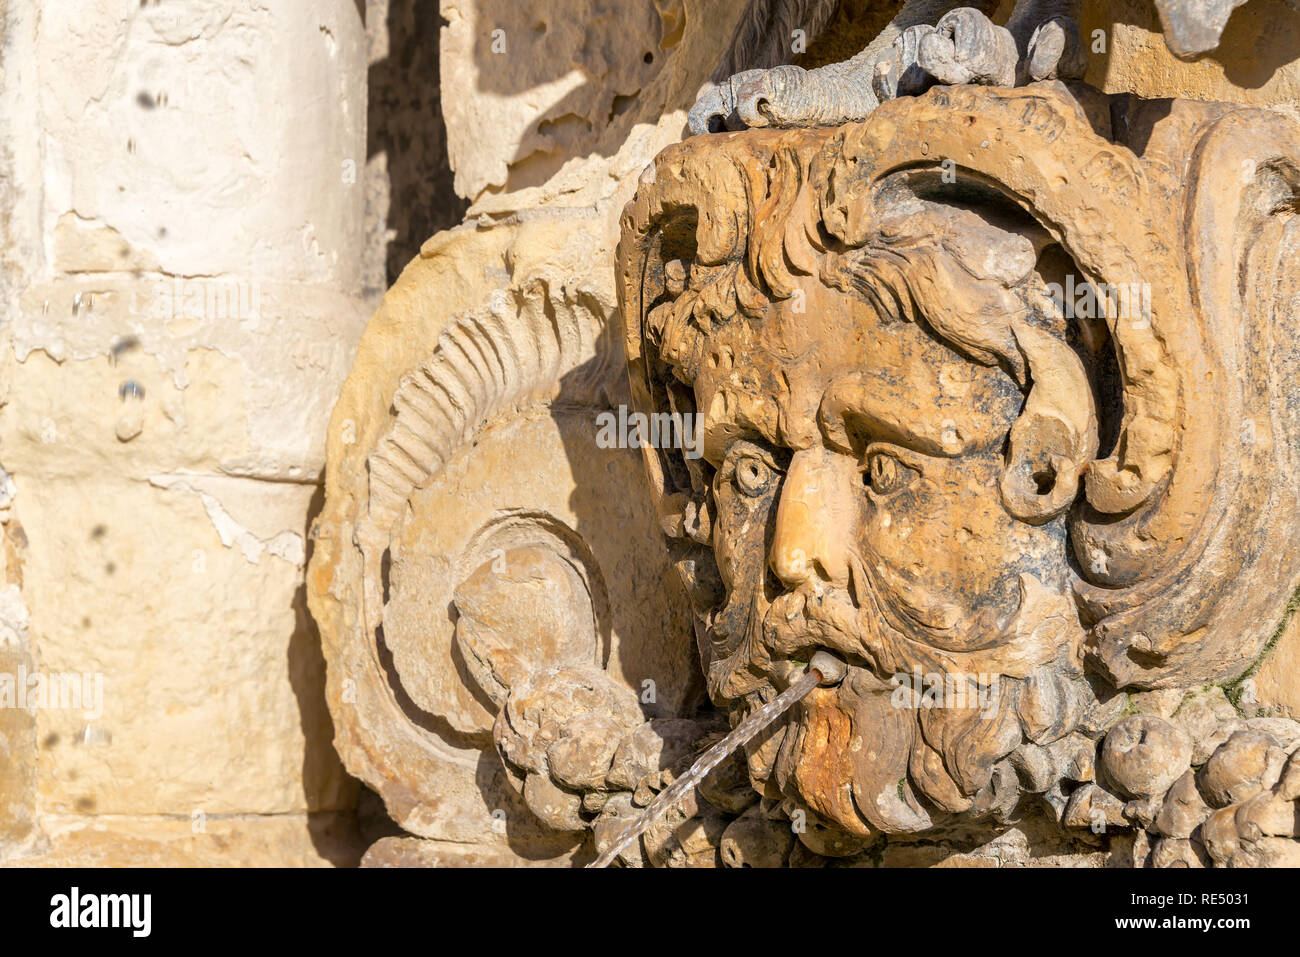 Closeup of a fountain in the shape of a face on St. Georges Square in Valletta, Malta - Stock Image